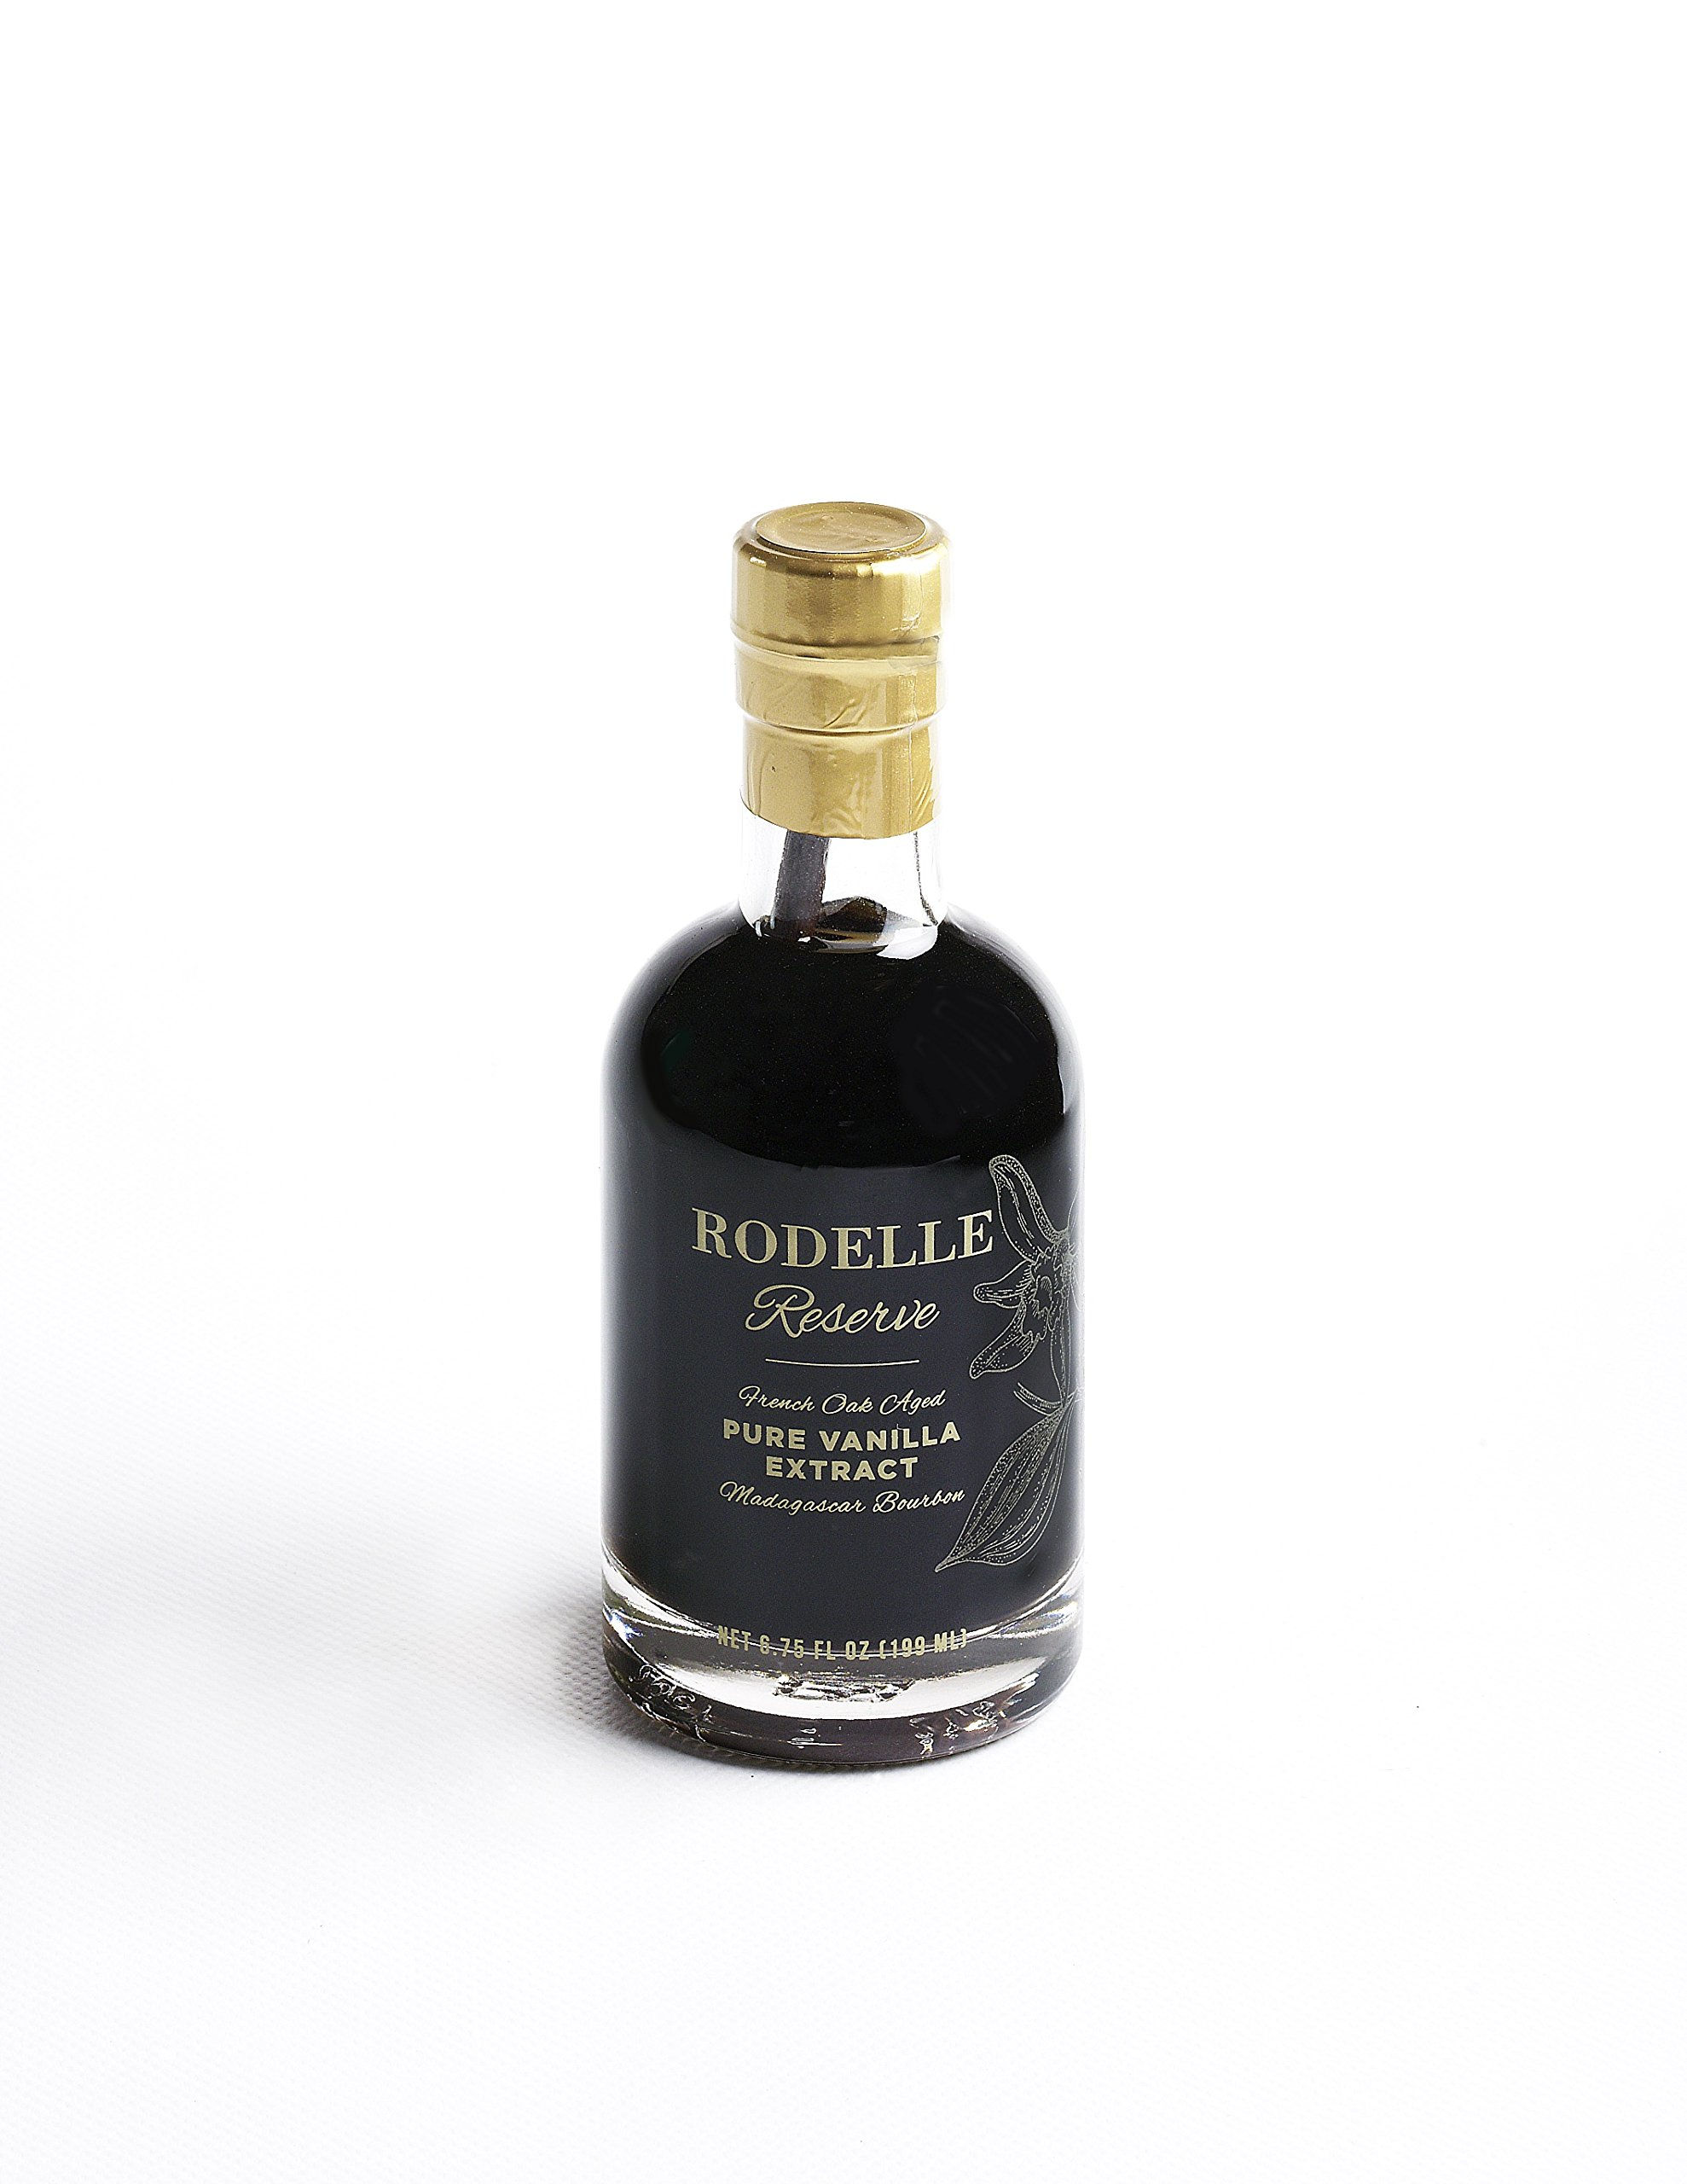 Rodelle Reserve Pure Vanilla Extract, 6.75 Oz, Madagascar Bourbon, Double Fold, Aged in French Oak, Contains Gourmet Vanilla Bean, Gift Box Included by Rodelle (Image #1)